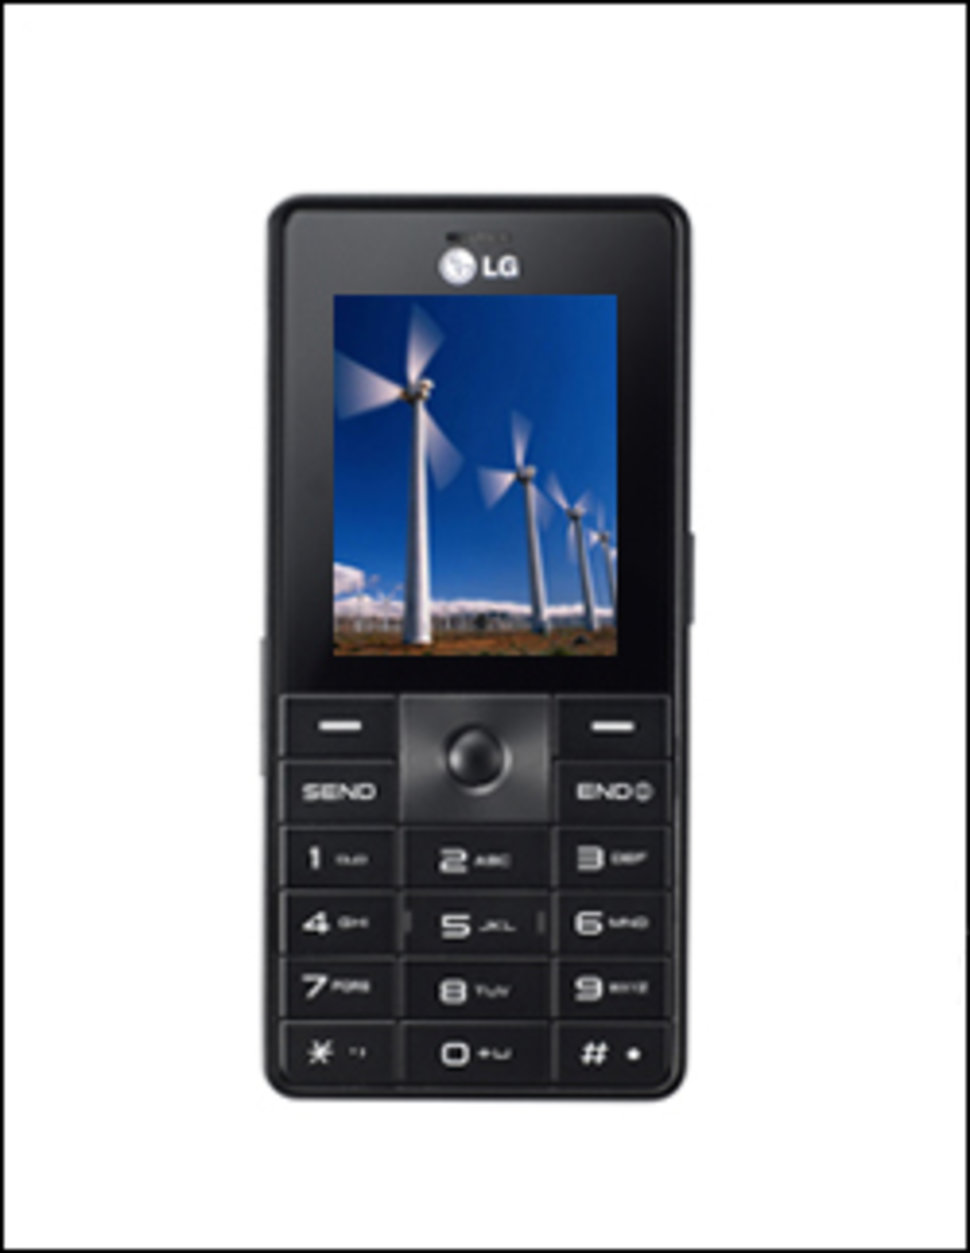 New LG Chocolate-eque phone, the Noir KG320, launches in the UK ...